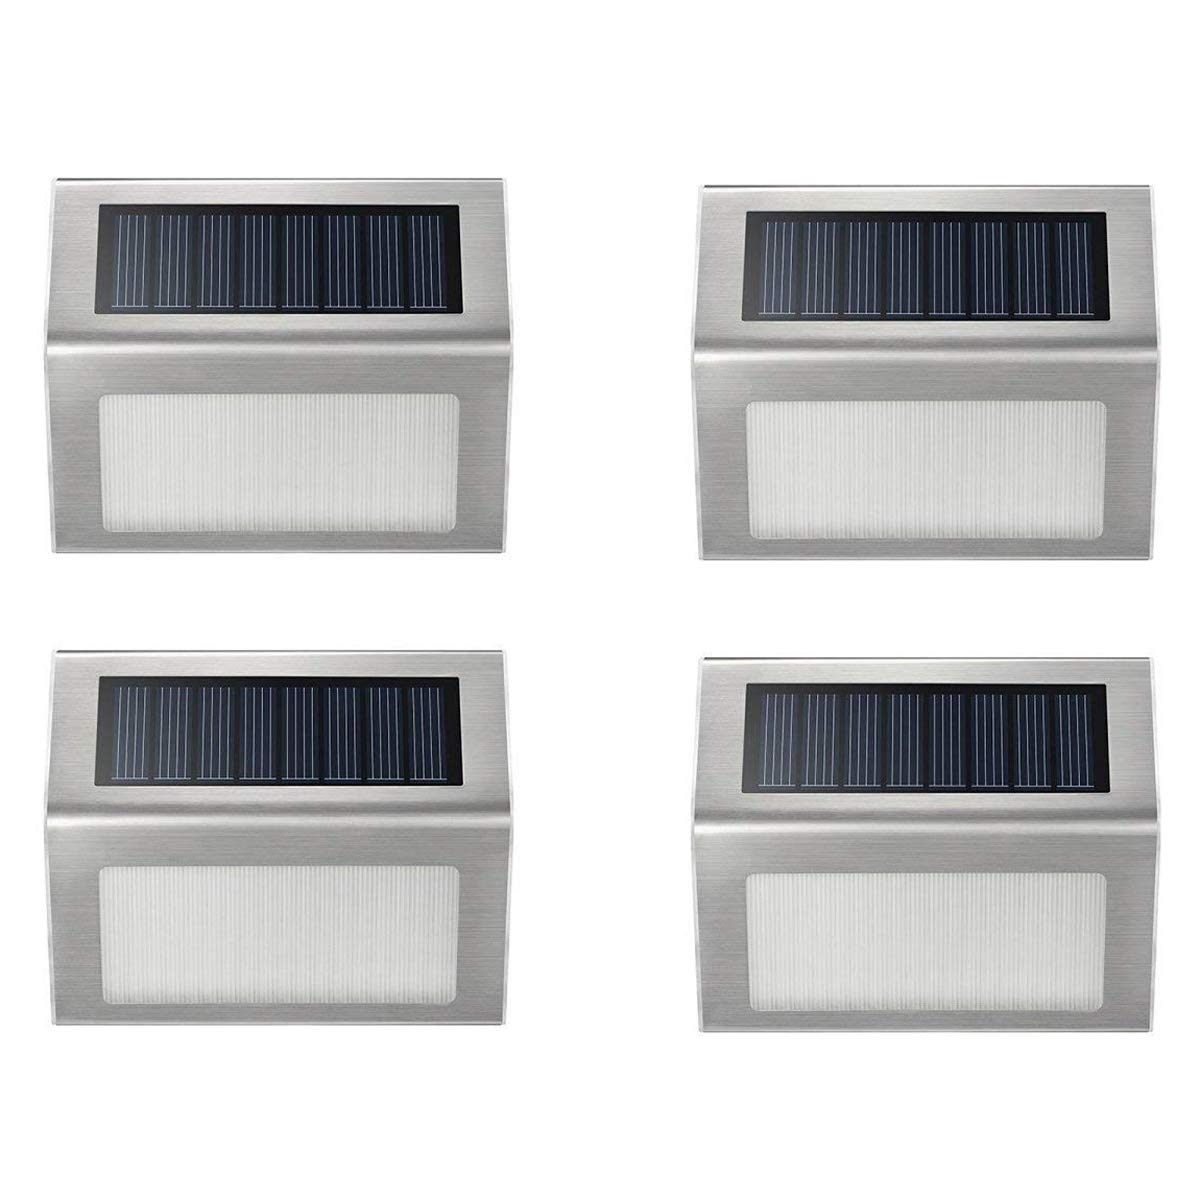 Solar Deck Lights, iThird 3 LED Solar Powered Step Lights Stainless Steel Outdoor Lighting for Steps Paths Patio Stair Auto On/Off Waterproof 4 Pack by iThird